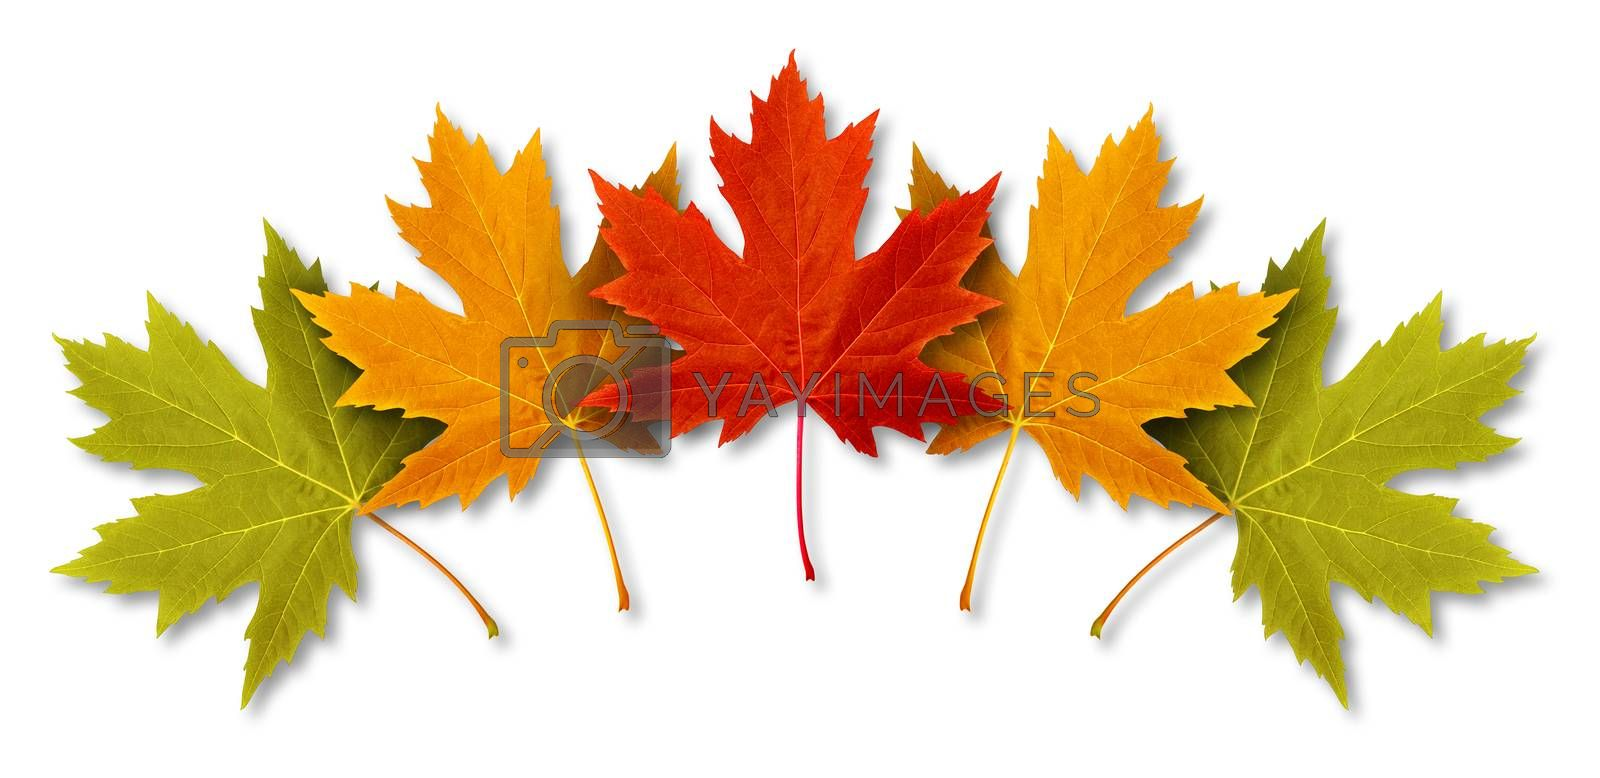 Autumn Leaves with five maple leaf foliage arranged in a multi colored seasonal themed concept as a symbol of the fall weather on a white background.